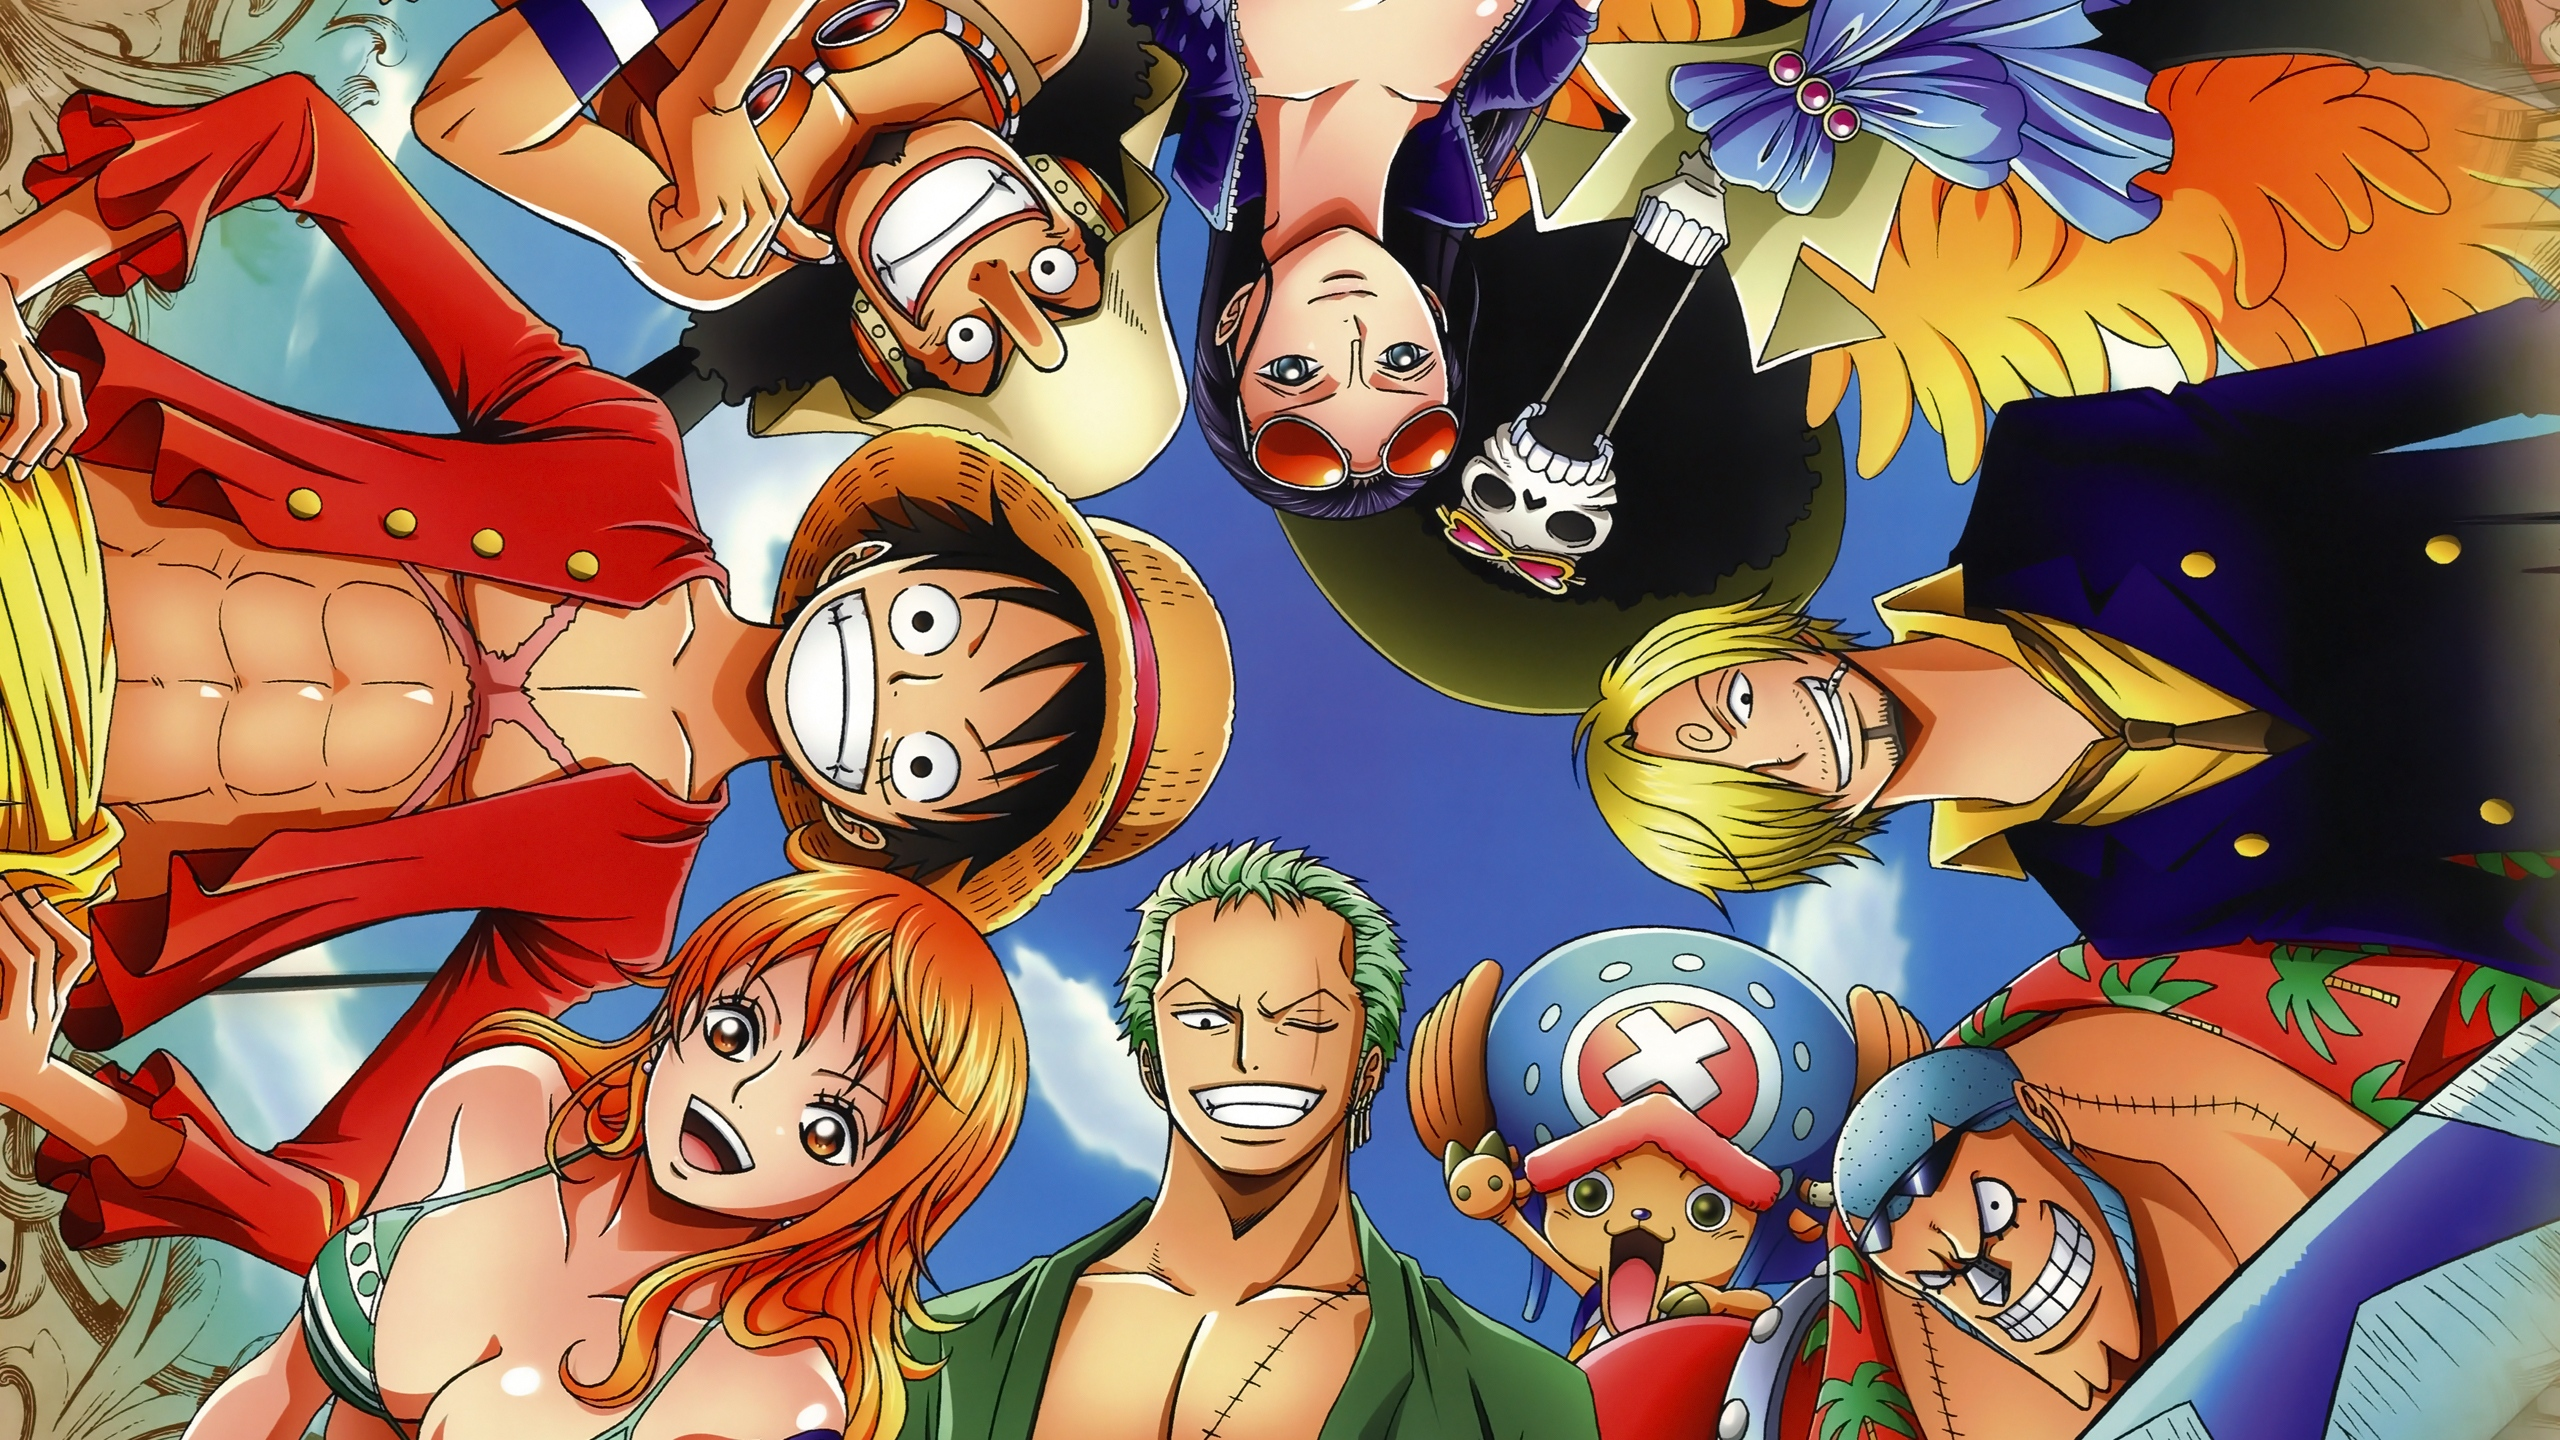 HD Wallpaper | Background Image ID:606284. 2560x1440 Anime One Piece